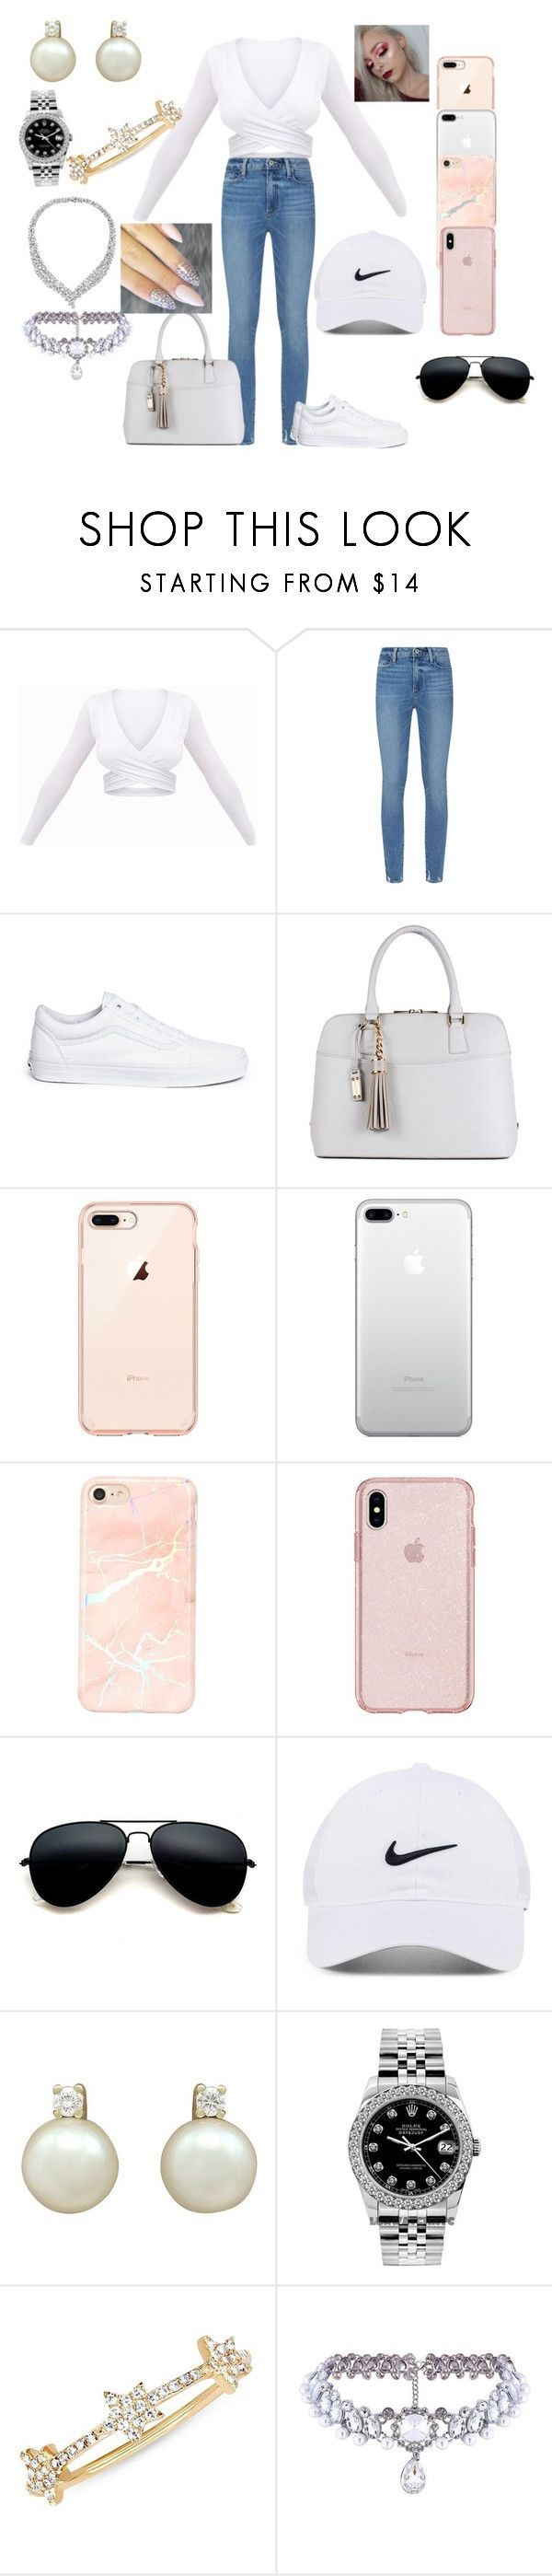 """""""Mall outfit"""" by cristaljuarezg ❤ liked on Polyvore featuring Paige Denim, Vans, NIKE, Rolex, EF Collection and WithChic"""